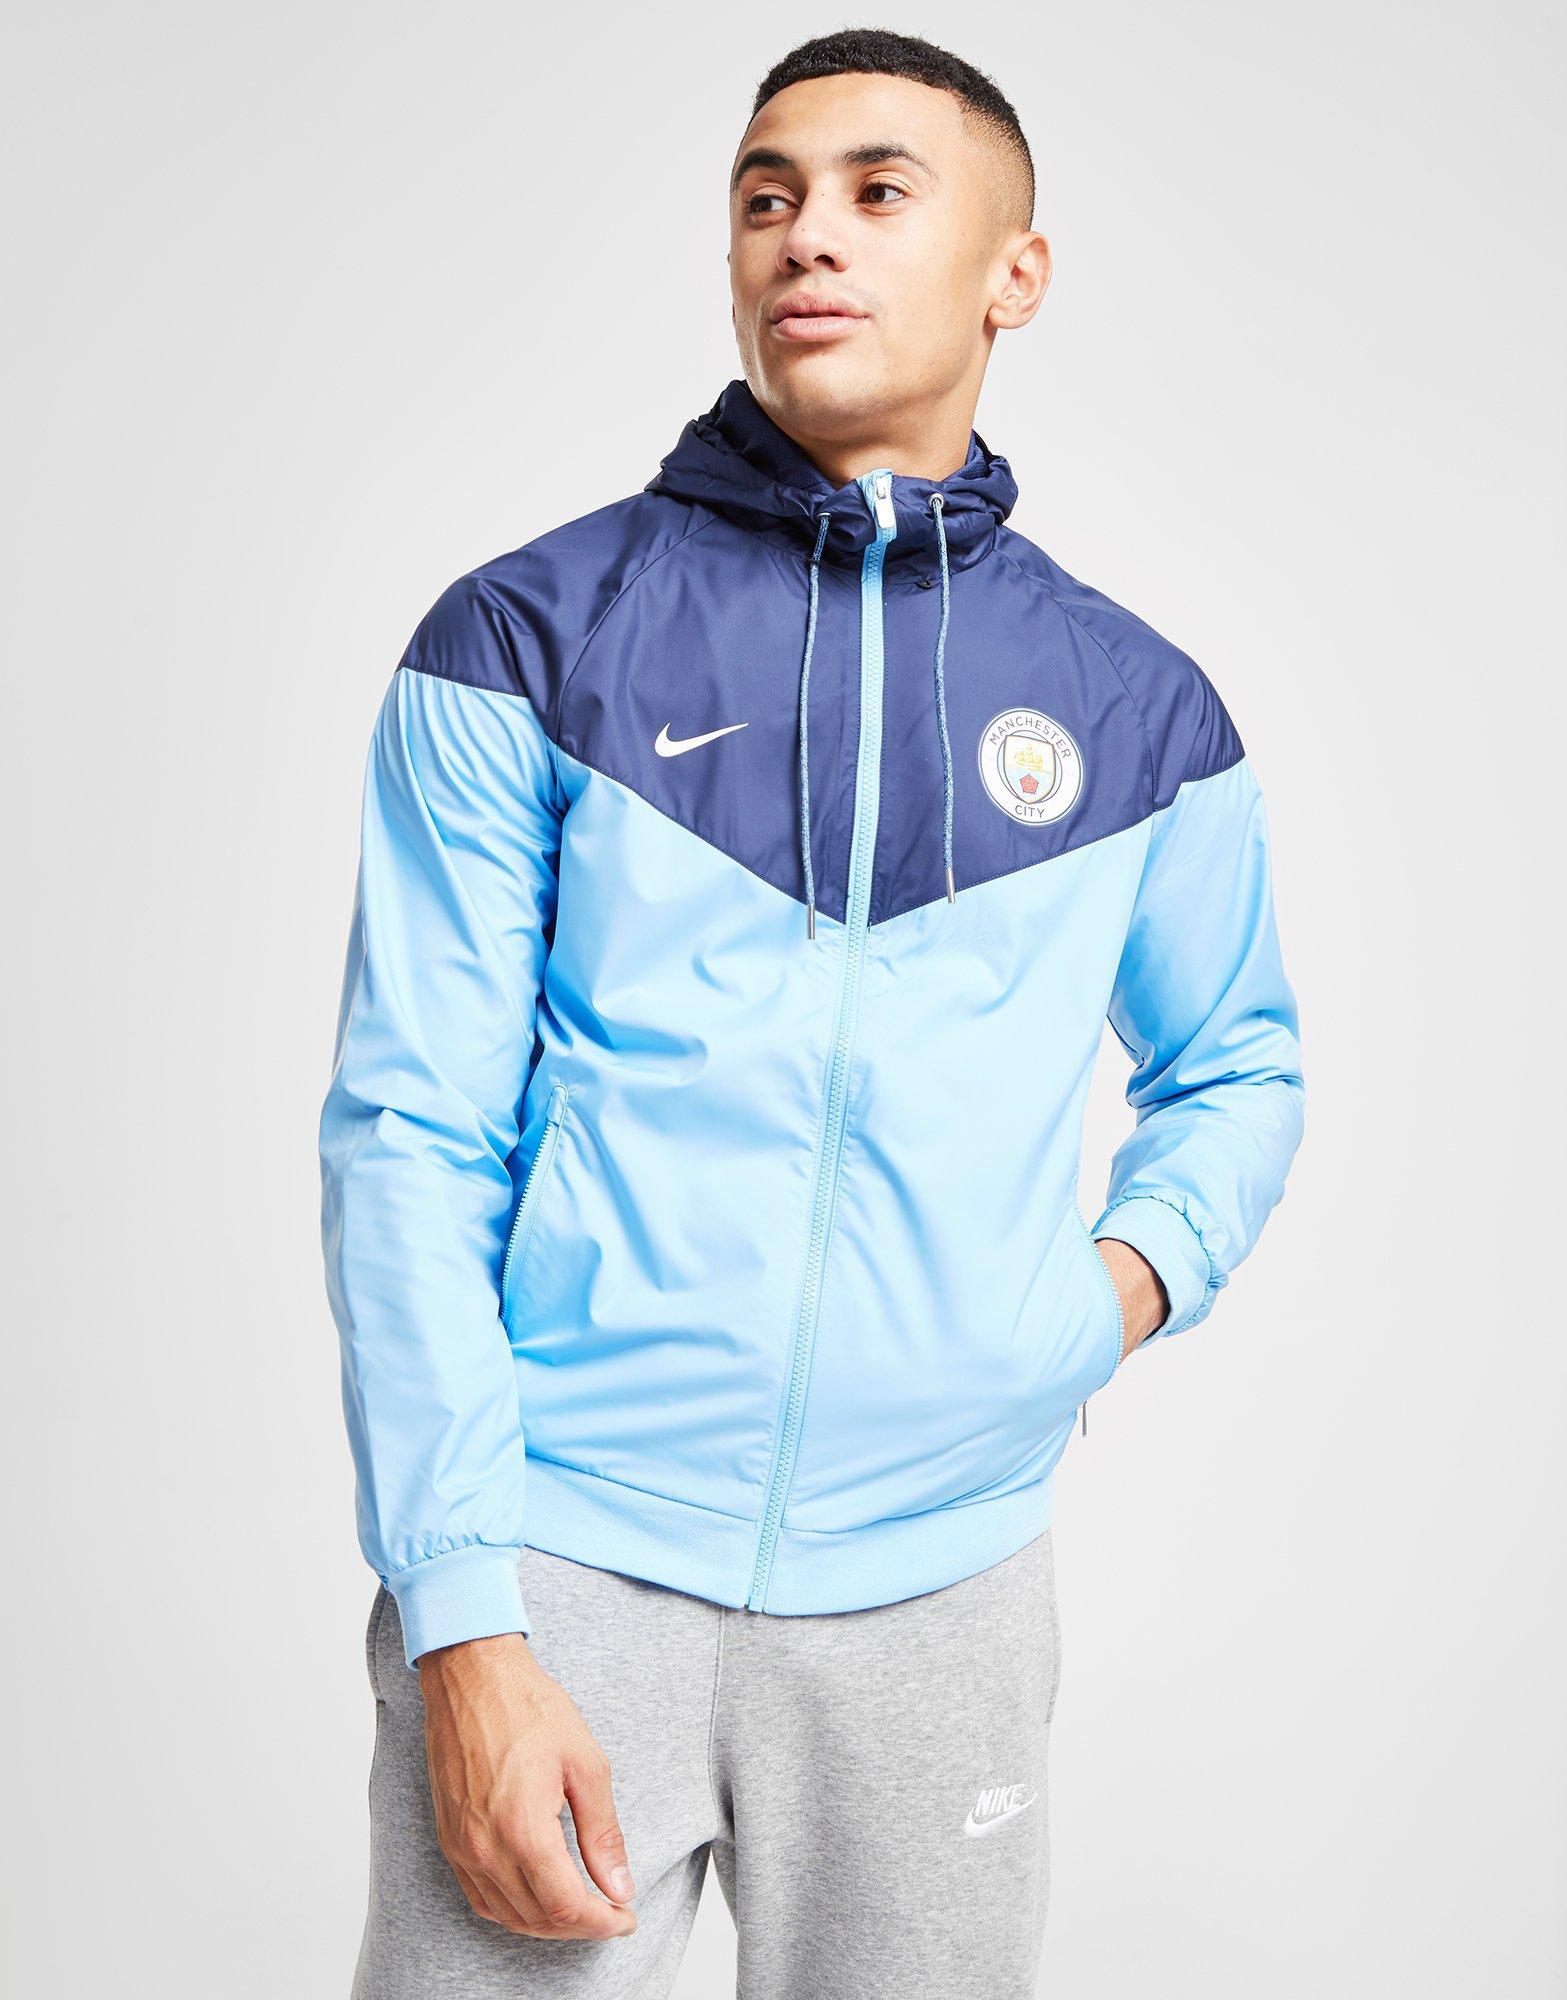 b6bea67110 Nike Manchester City Fc Windrunner Men s Jacket in Blue for Men - Lyst